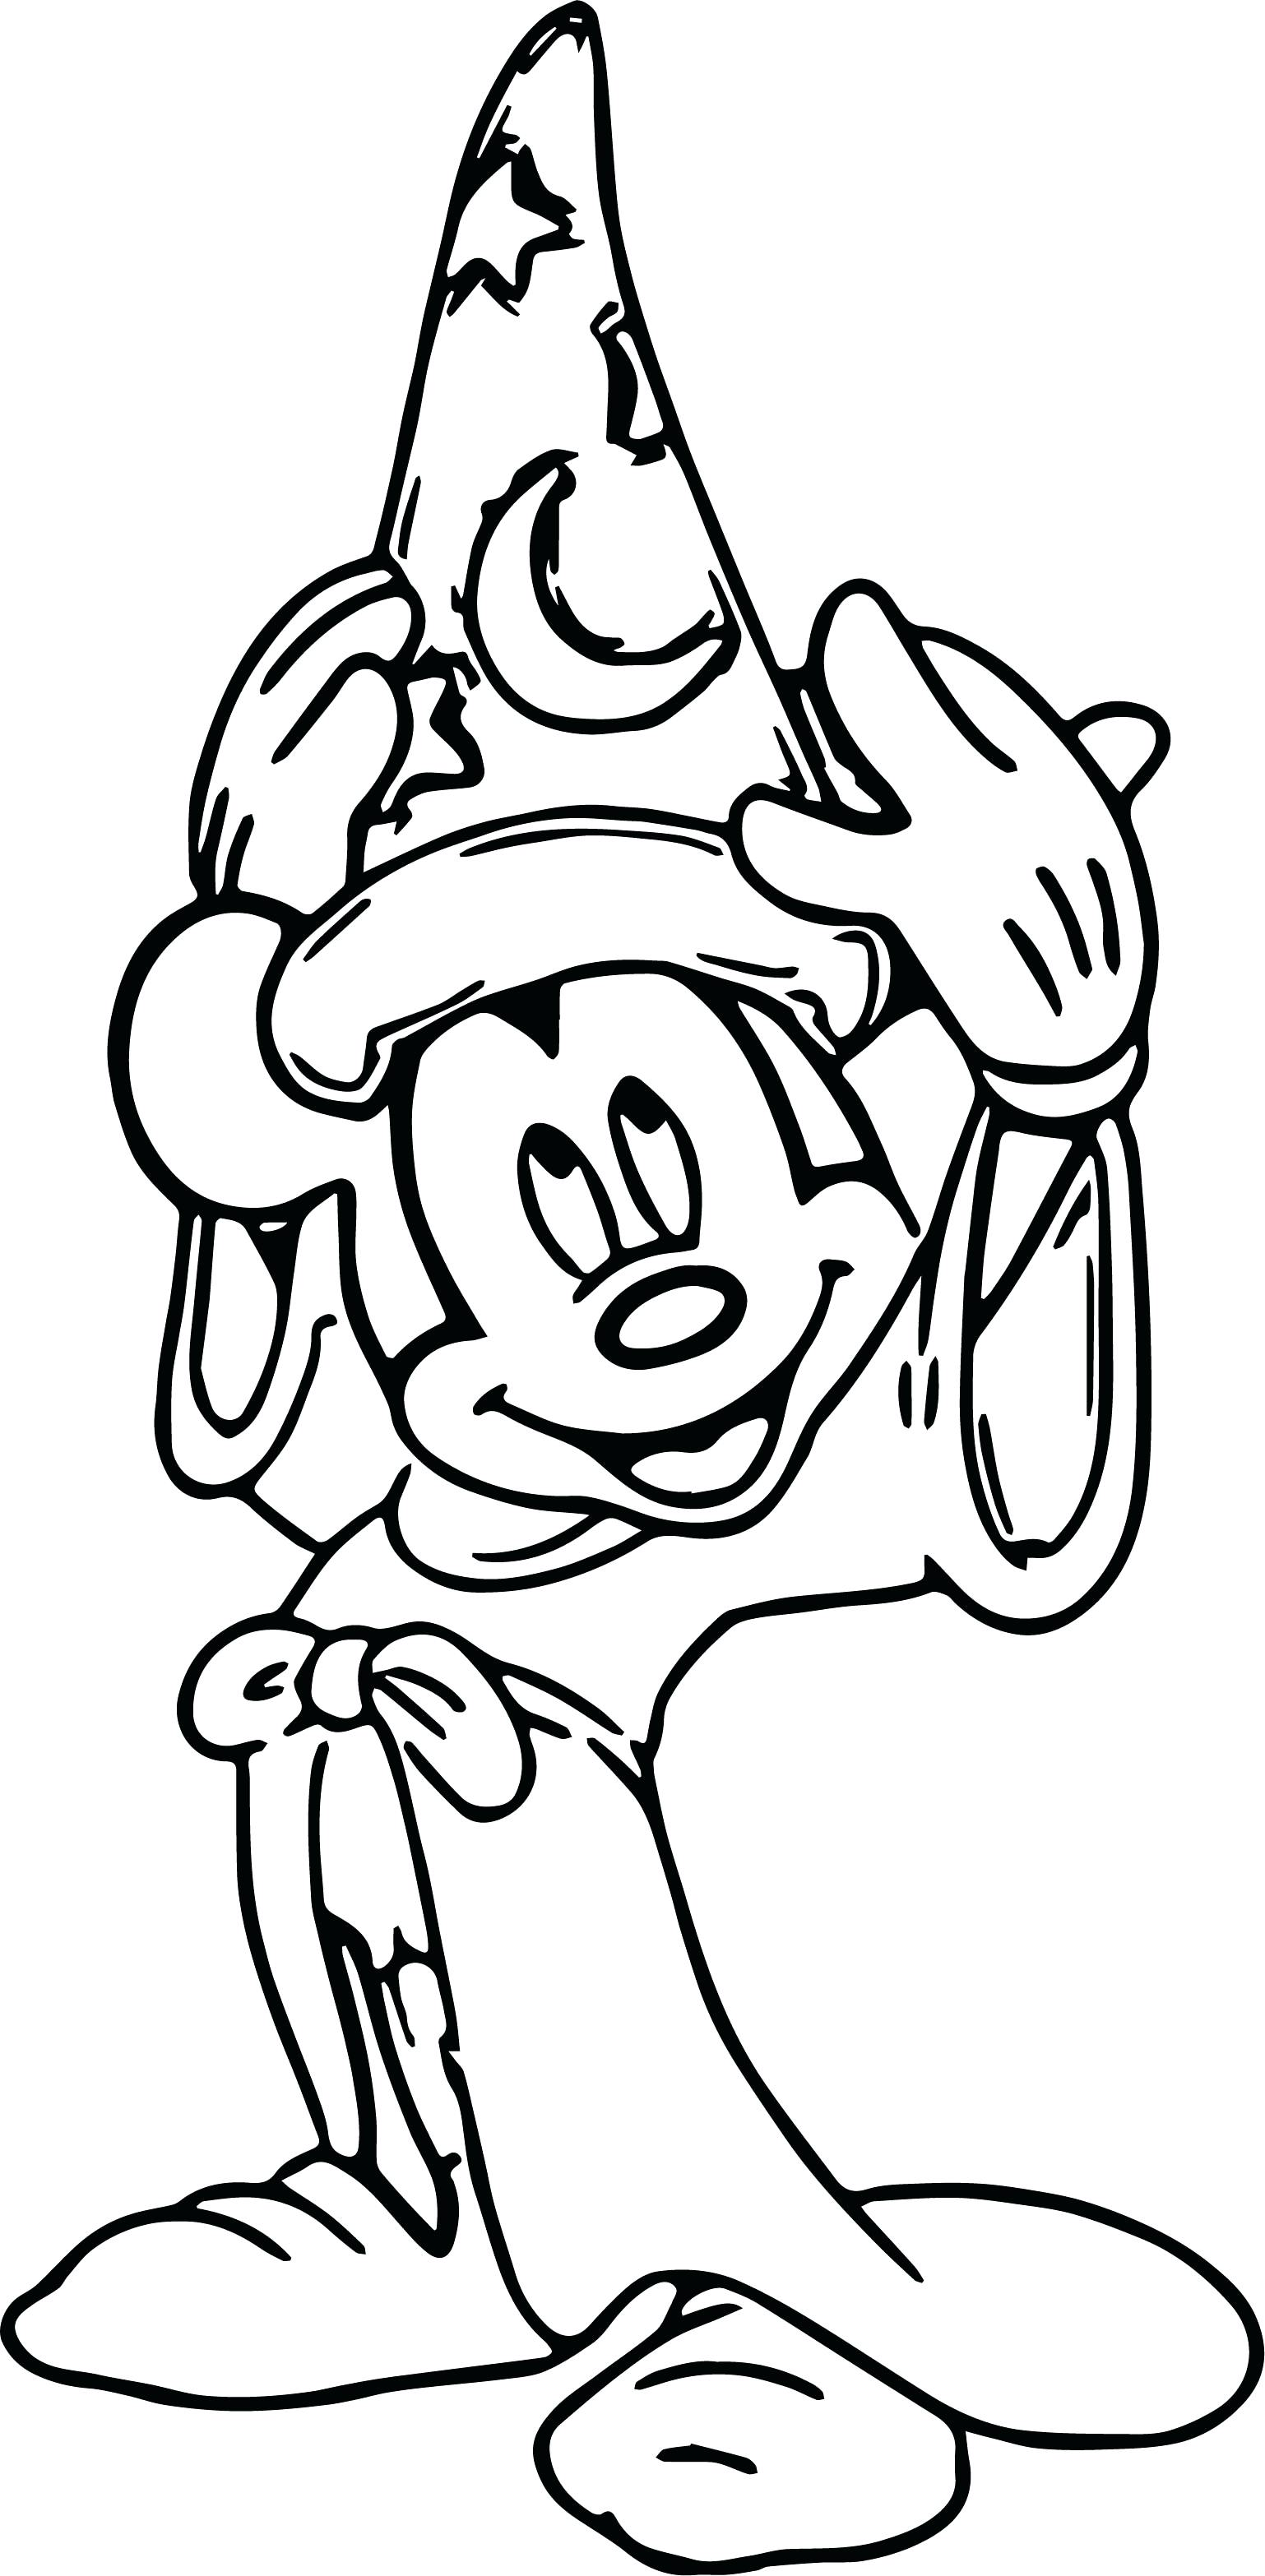 1538x3133 Coloring Coloring Page Hat